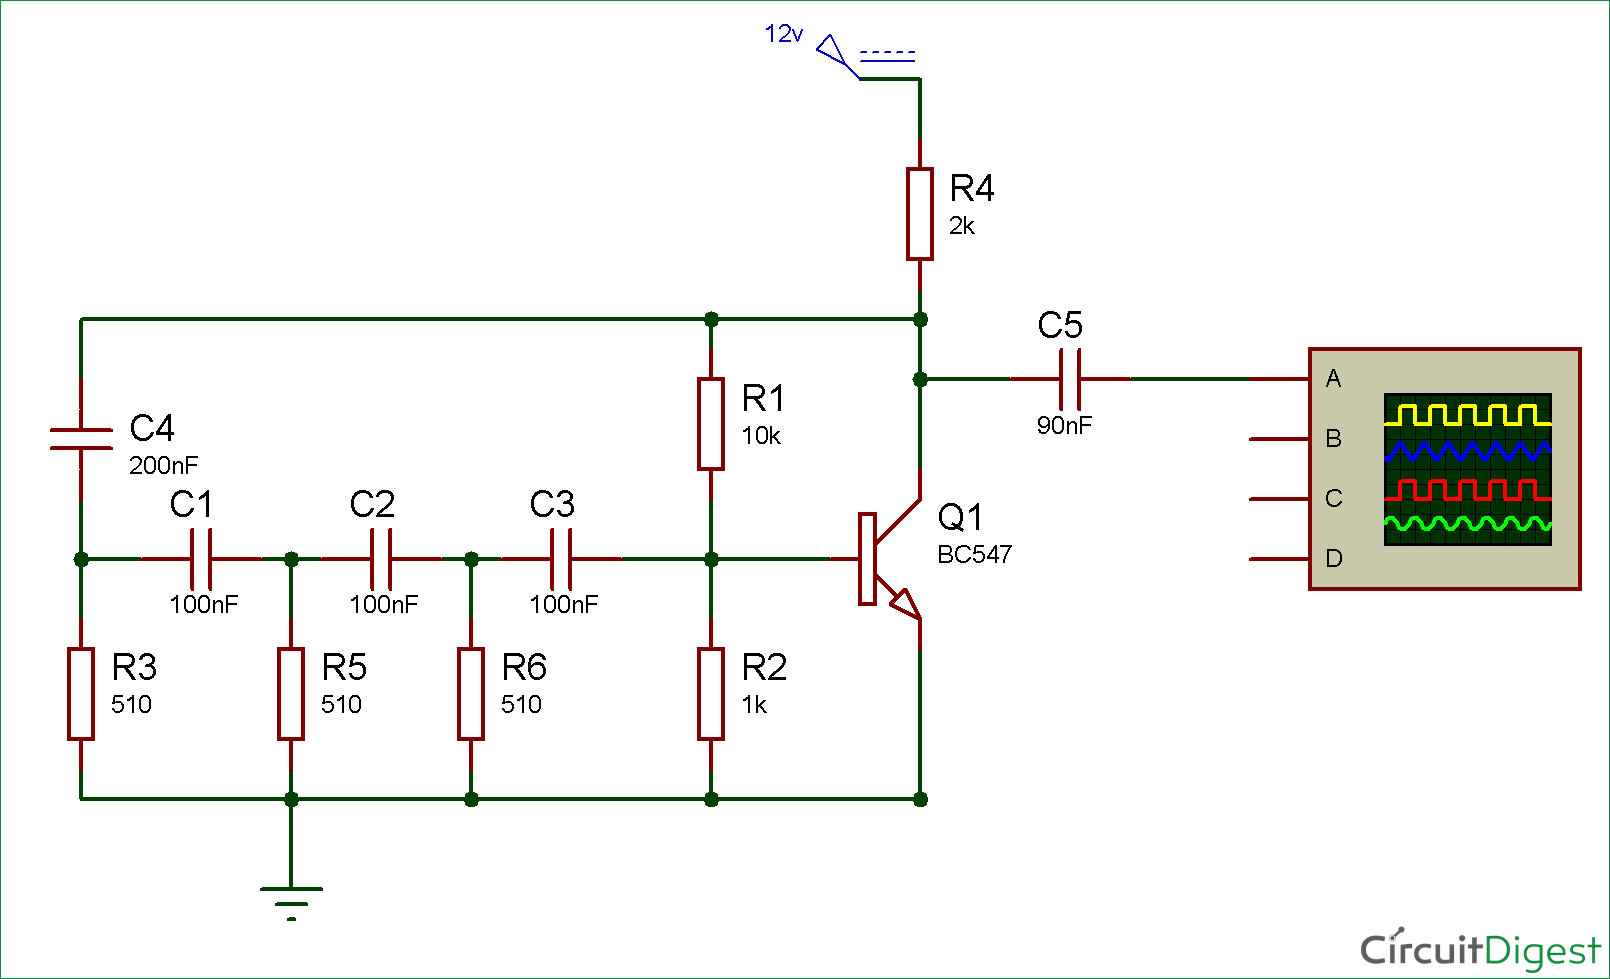 C2luZS13YXZlLWdlbmVyYXRvci1zY2hlbWF0aWM on wien bridge oscillator circuit diagram